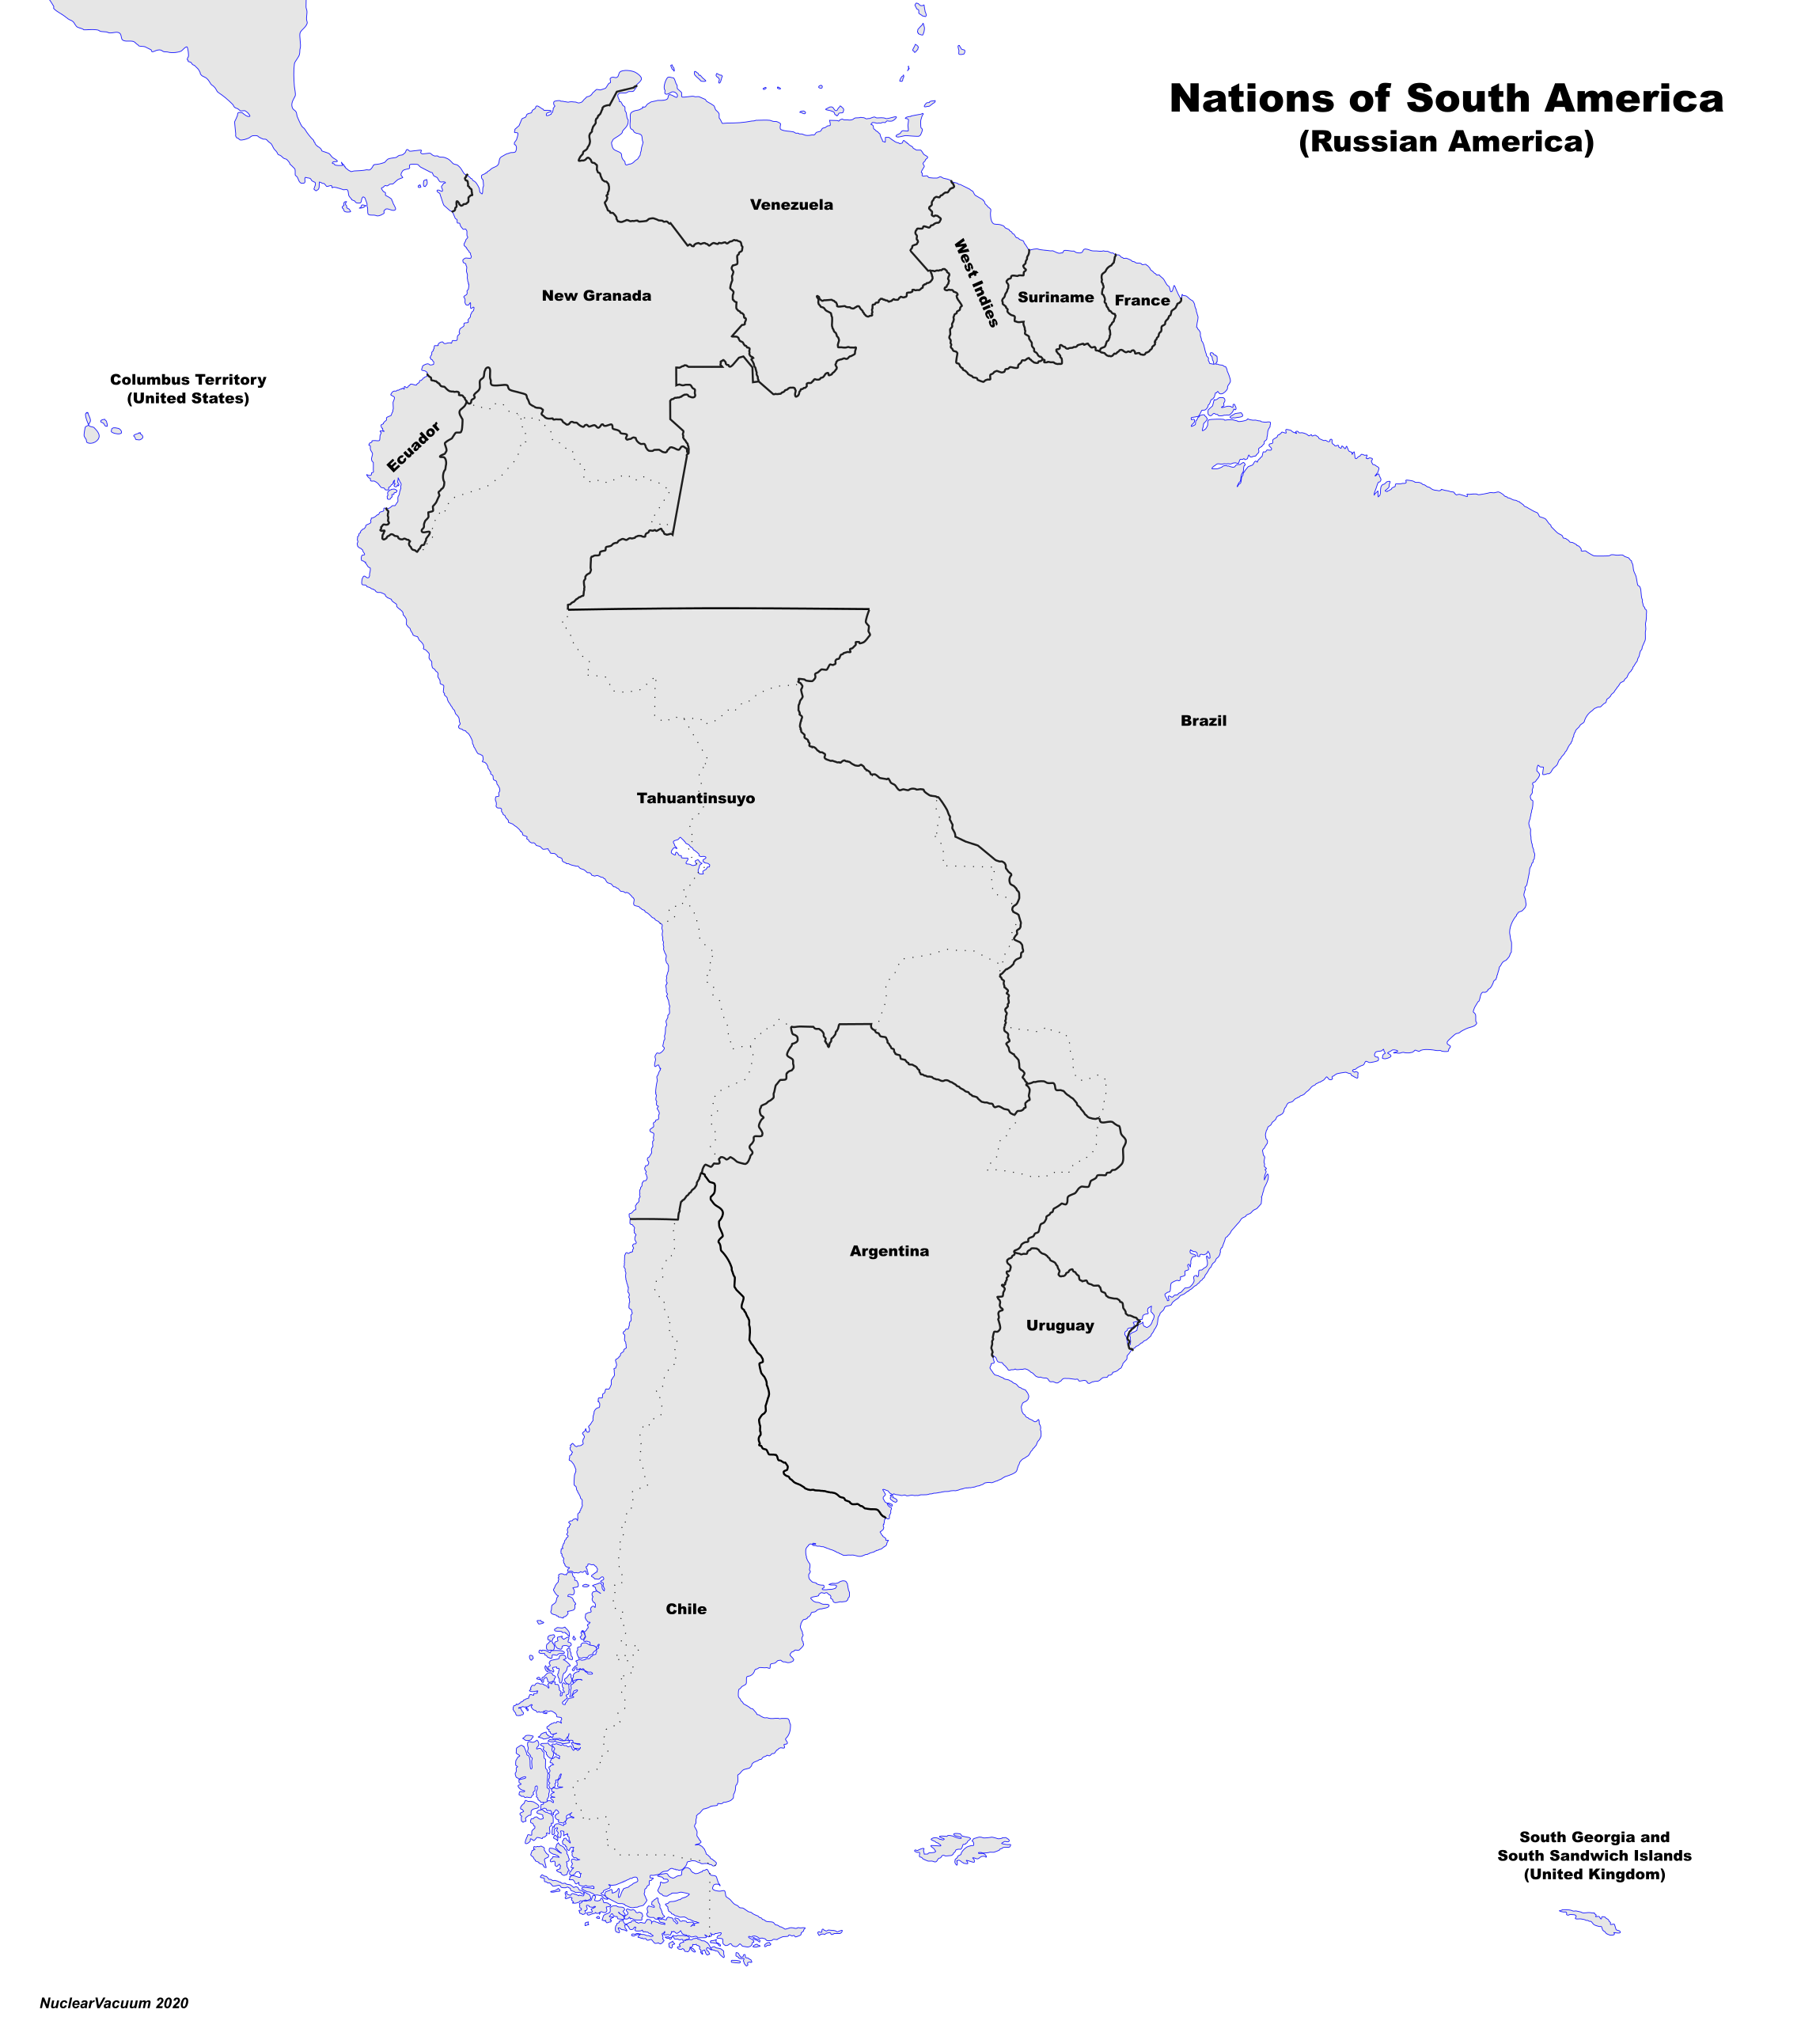 Image Map Of South America Russian Americapng Alternative - South america argentina map